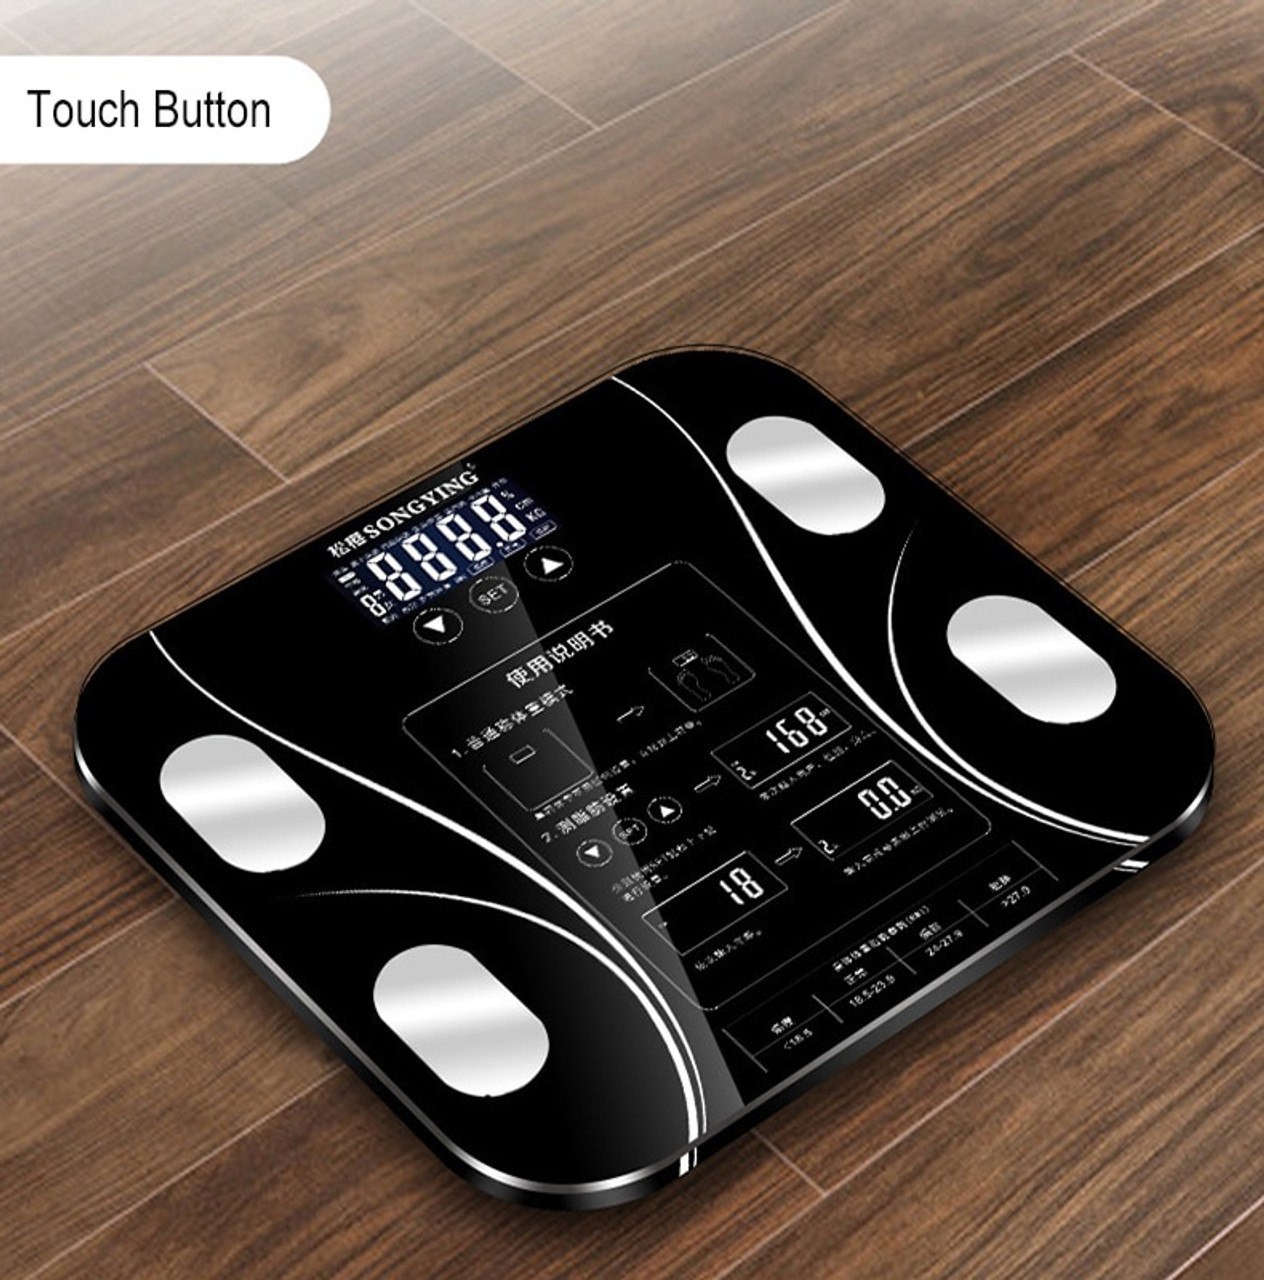 1ff9640f816a Hot 13 Body Index Electronic Smart Weighing Scales Bathroom Body Fat bmi  Scale Digital Human Weight Mi Scales Floor lcd display